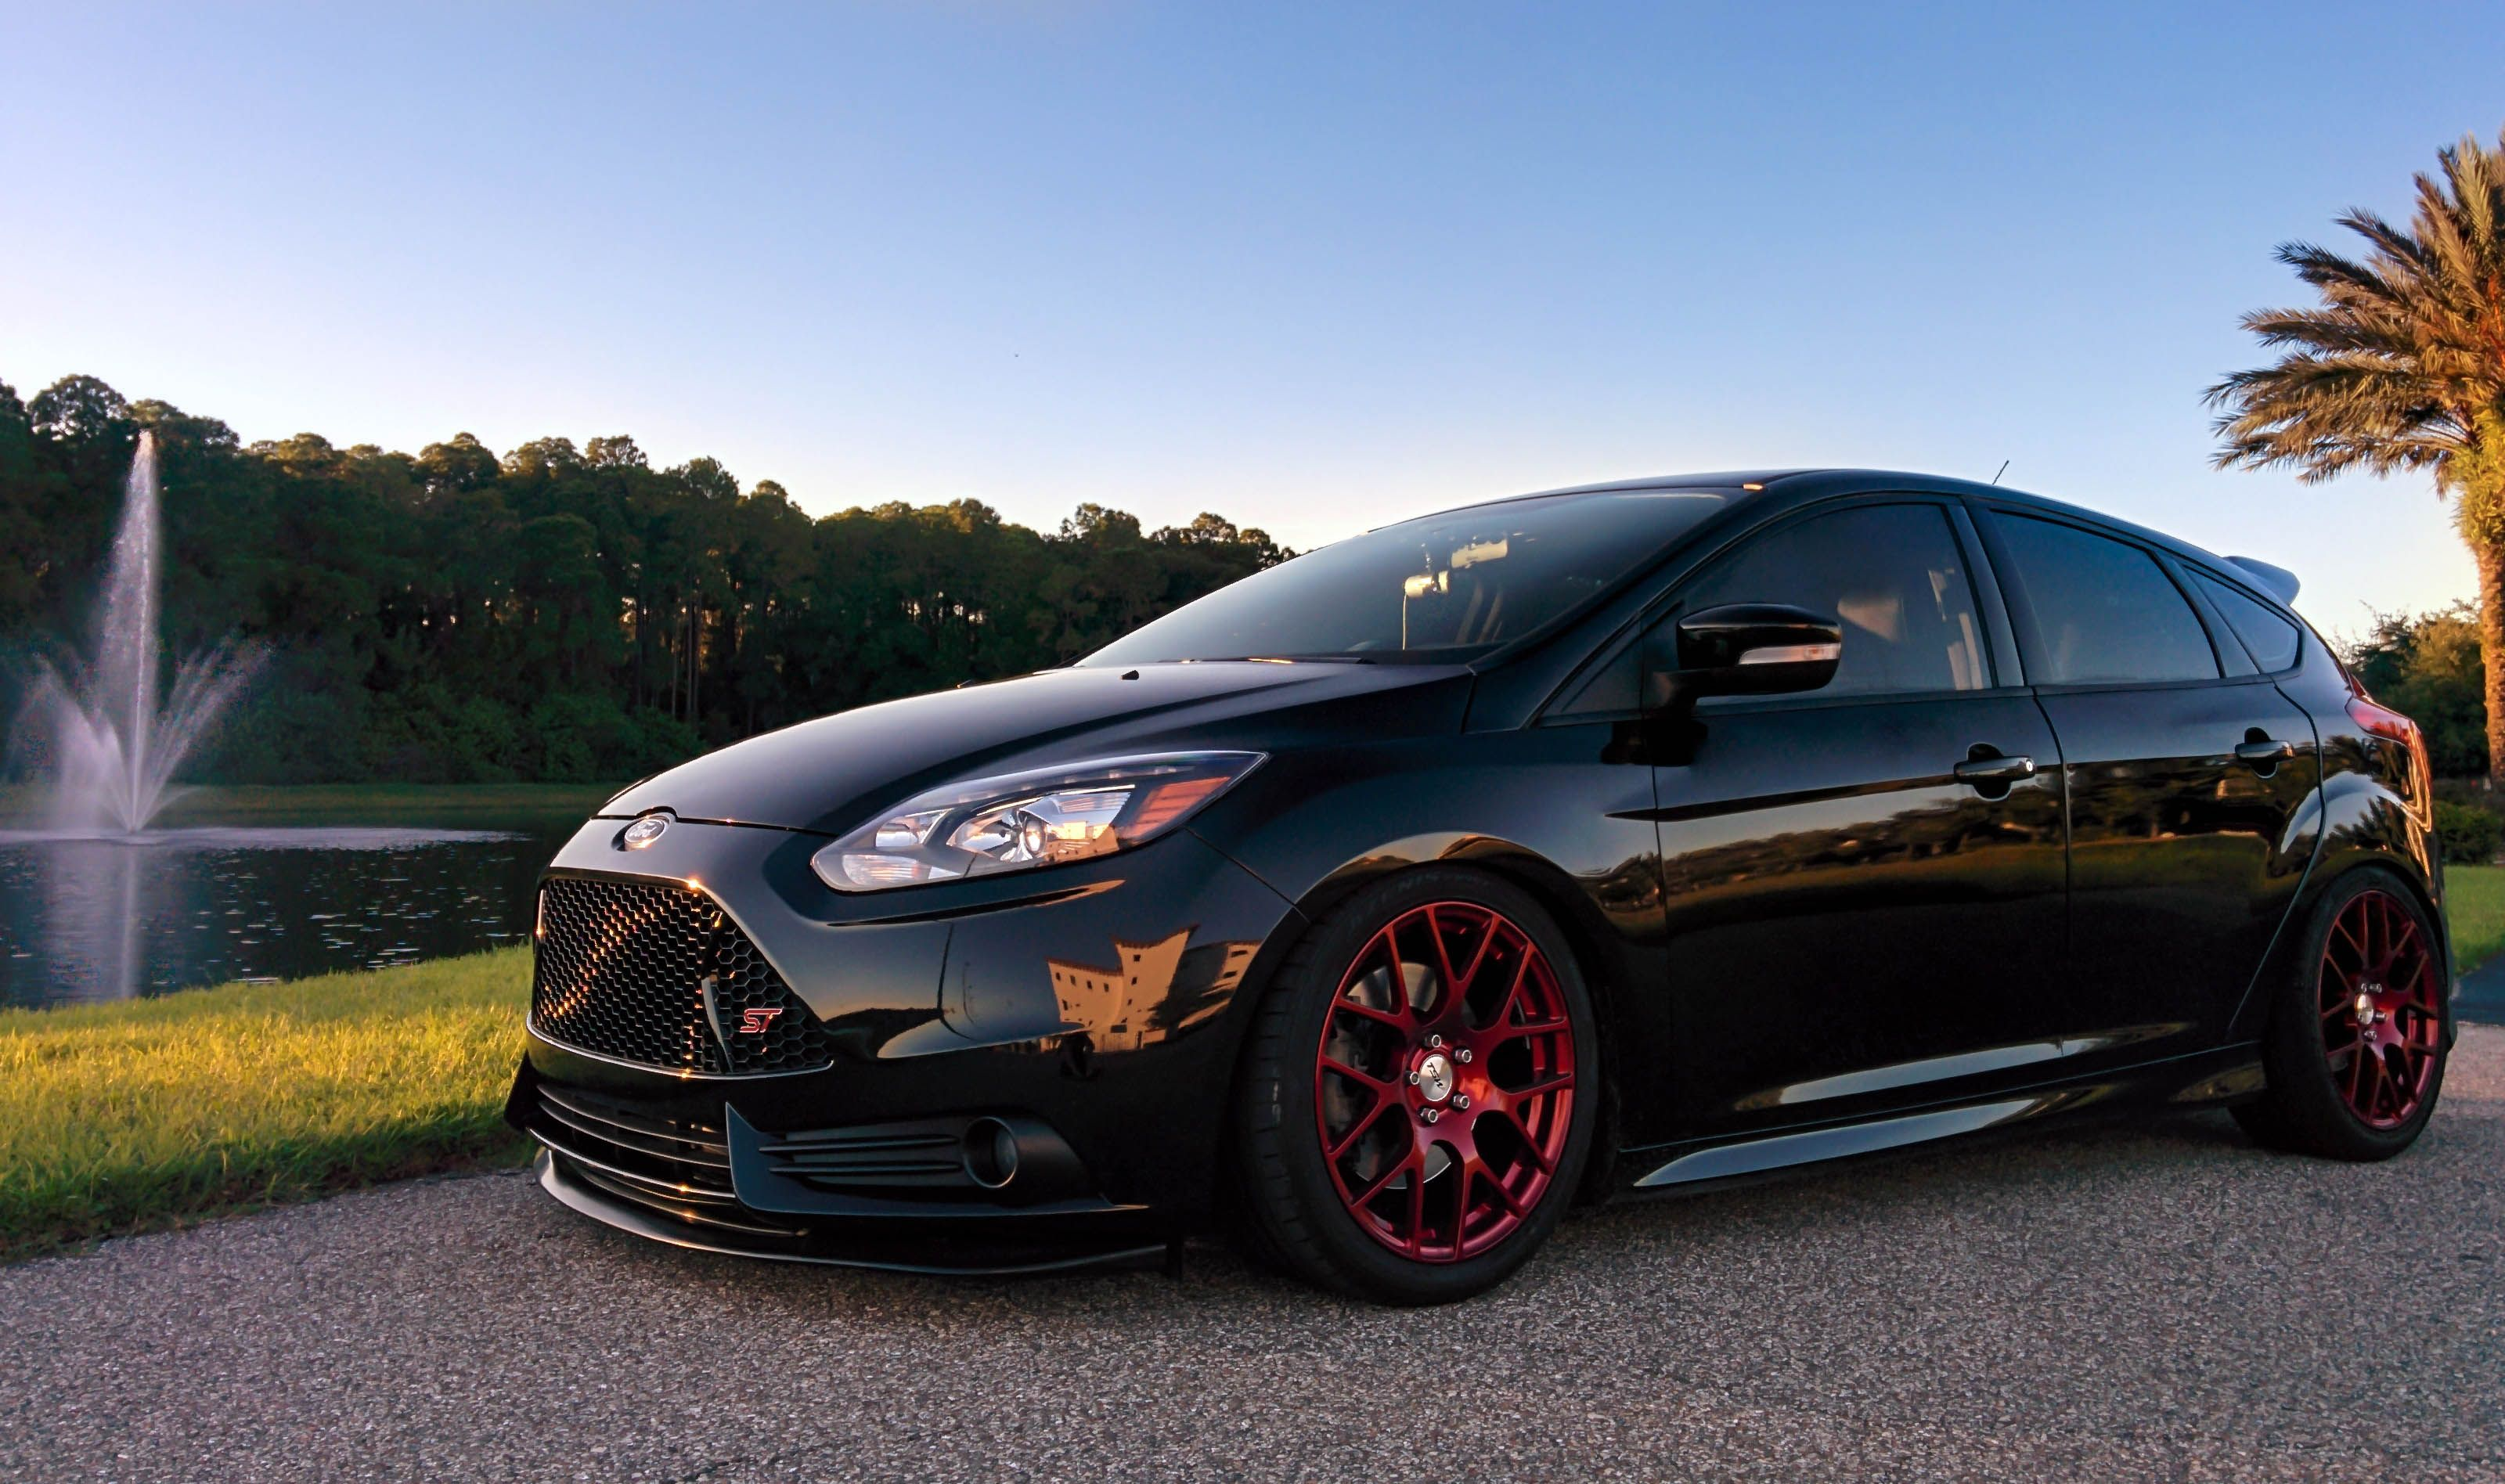 Focus St Lip Google Search Ford Focus Ford Focus St Hot Hatchback